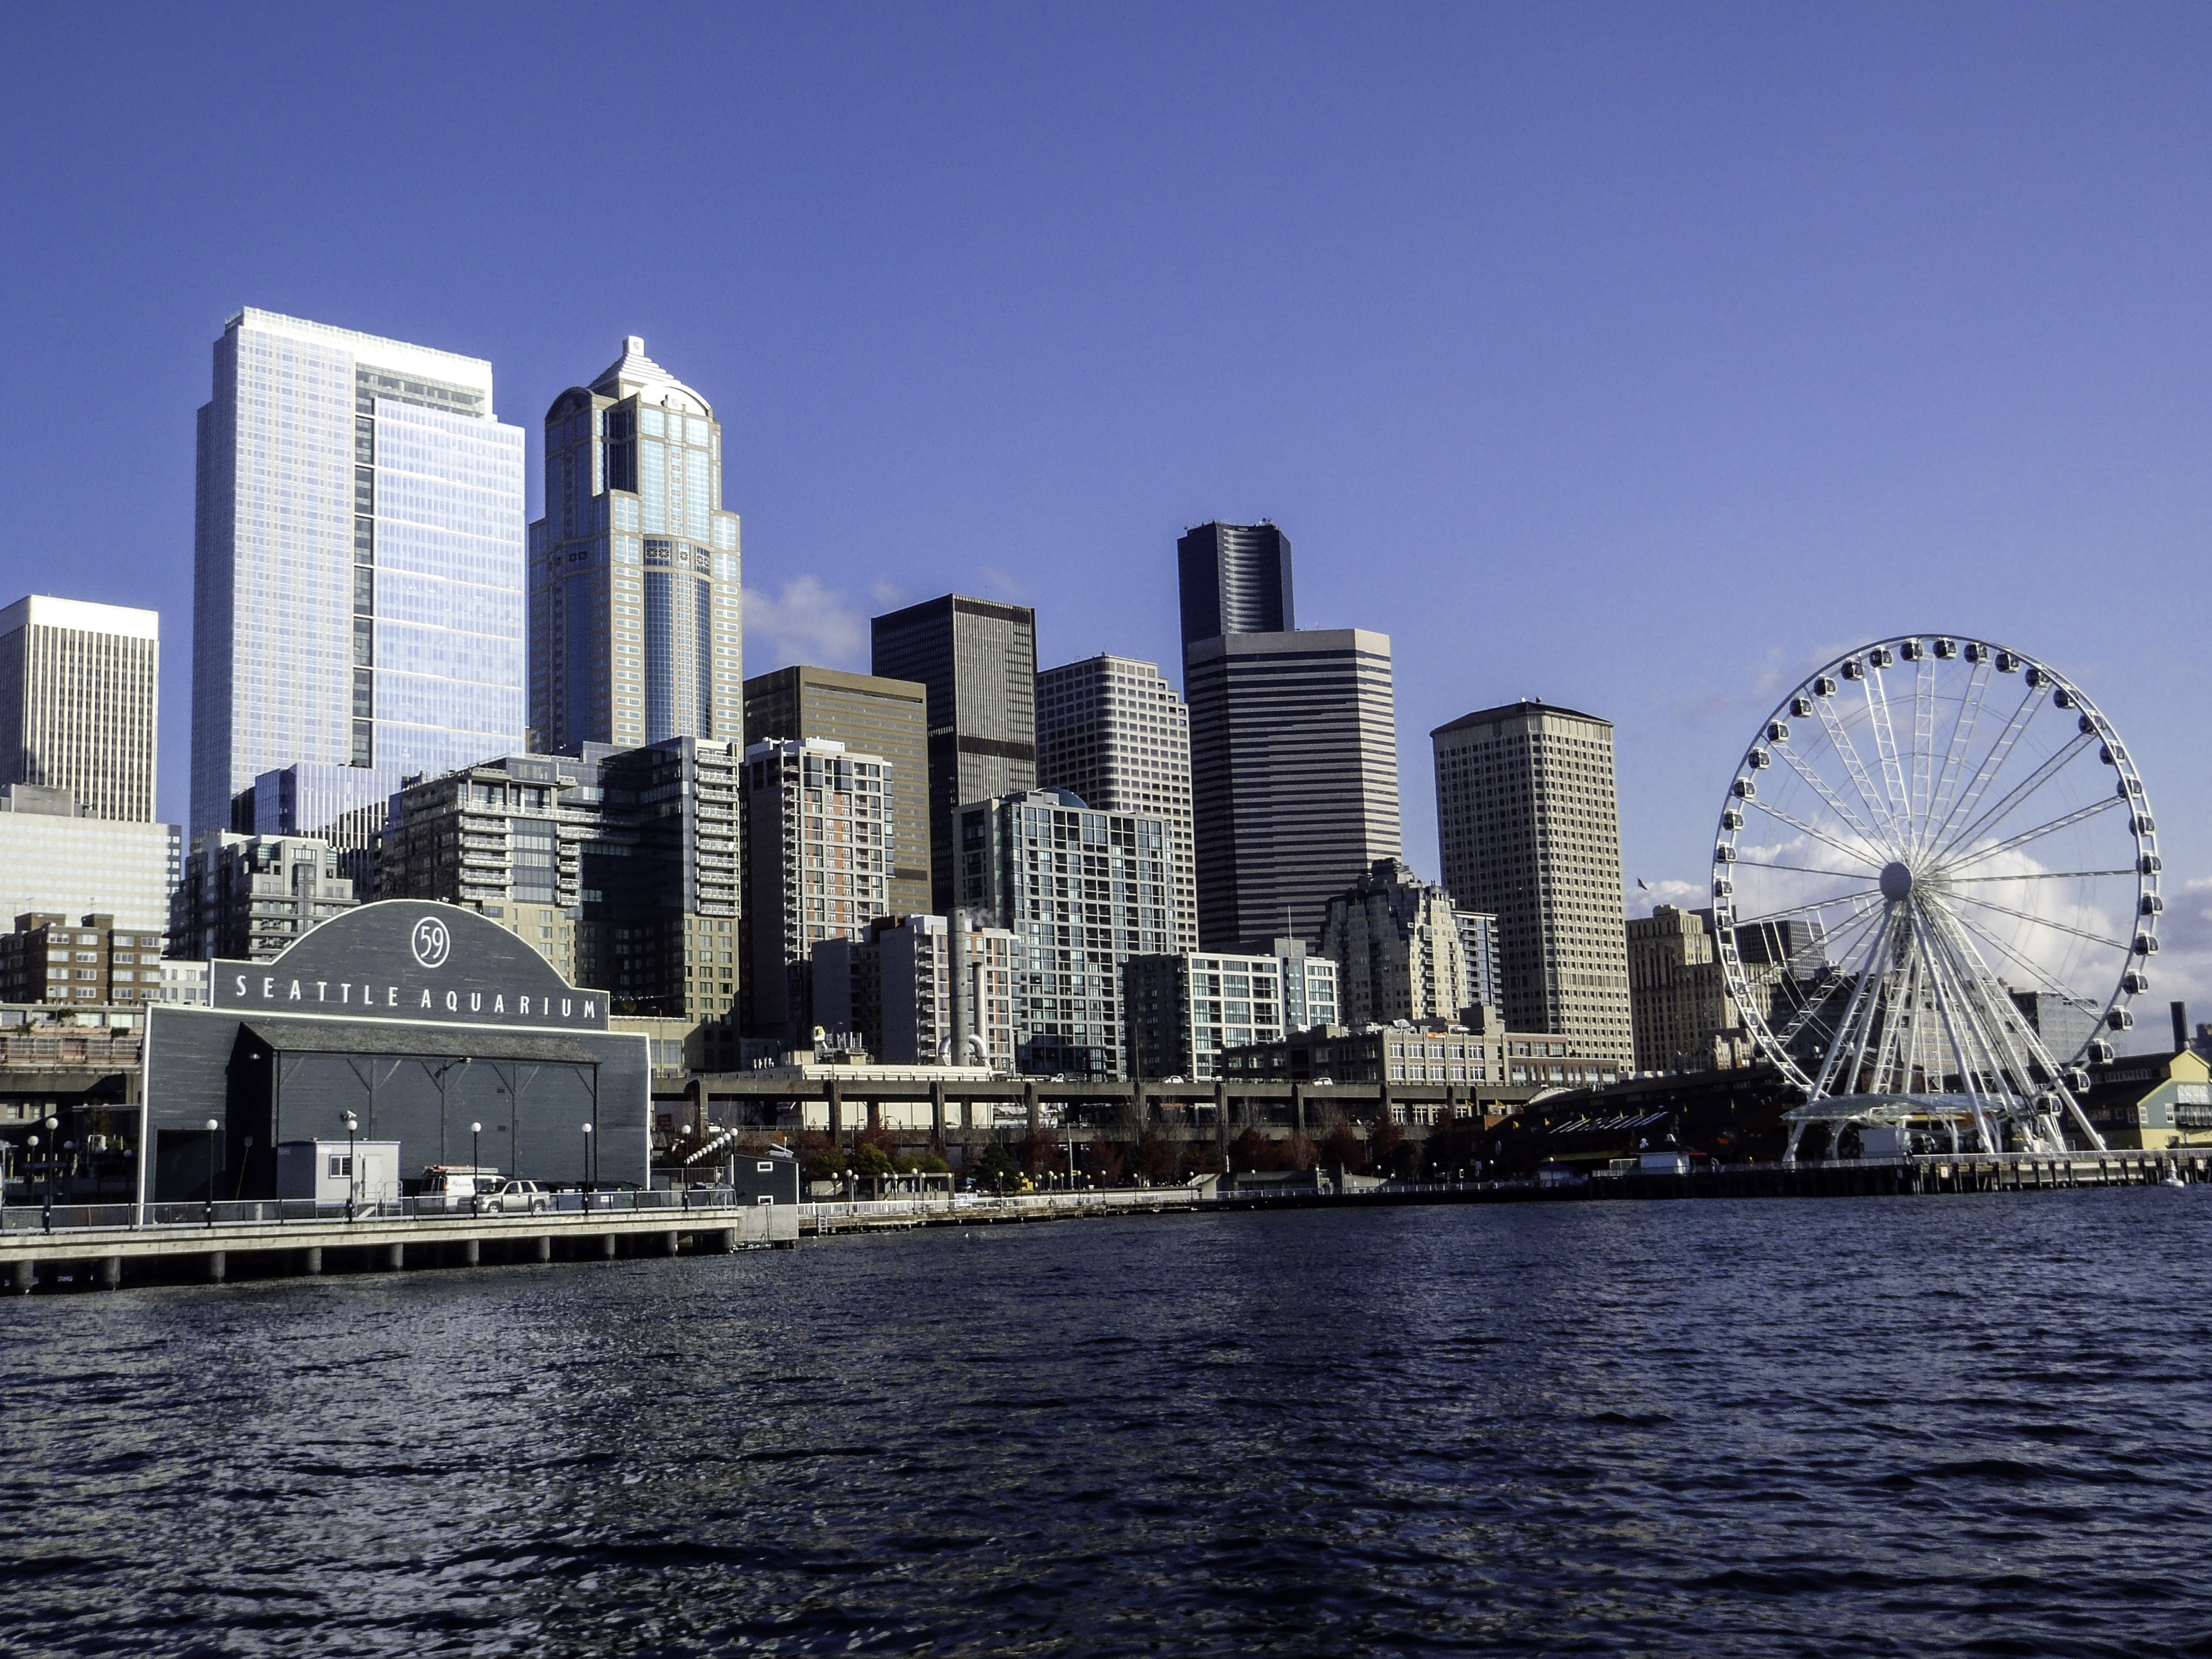 How Much Is Tax >> Seattle Skyline across the water in Washington image ...